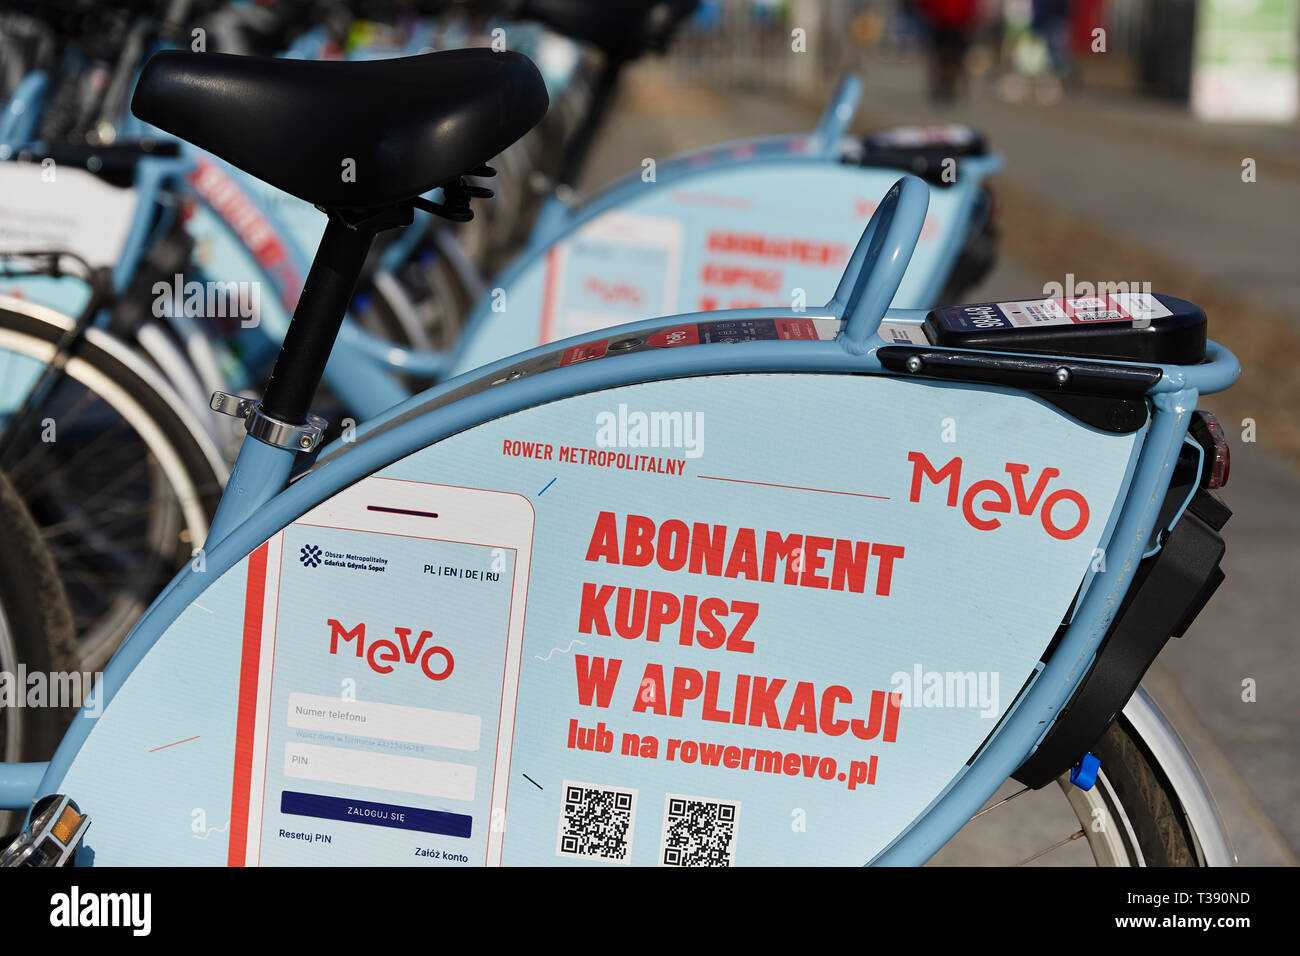 'Mevo' electric bikes. 'Mevo' is new bike sharing system in Metropolitan area Gdańsk Gdynia Sopot, and it's largest and most modern system in Europe. - Stock Image